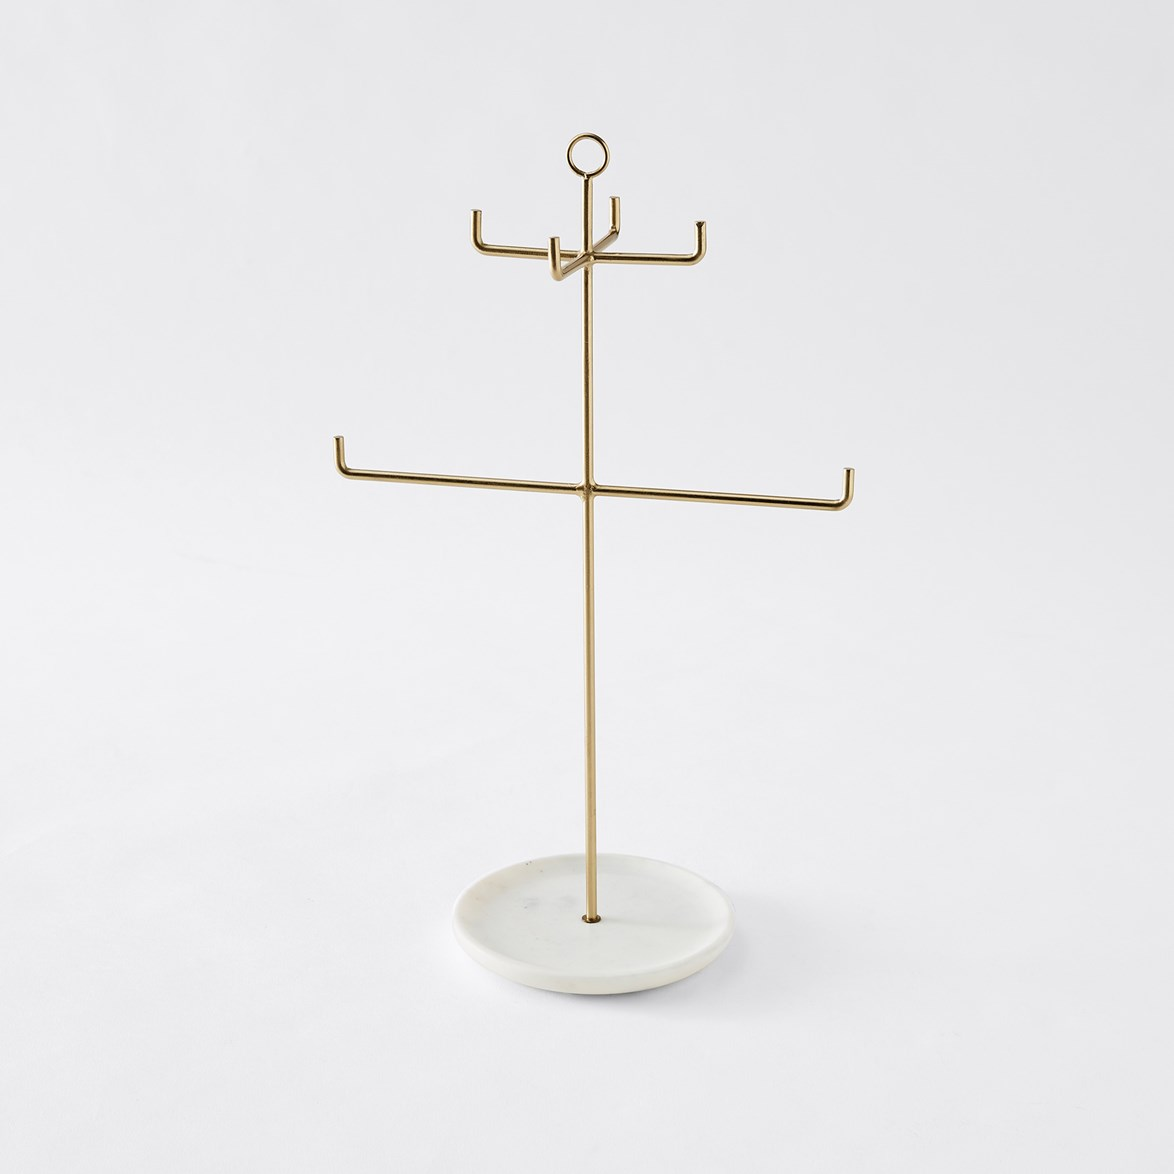 "Jewellery Stand with Marble Base, $15, [Target](https://www.target.com.au/p/jewellery-stand-with-marble-base/62293457|target=""_blank""